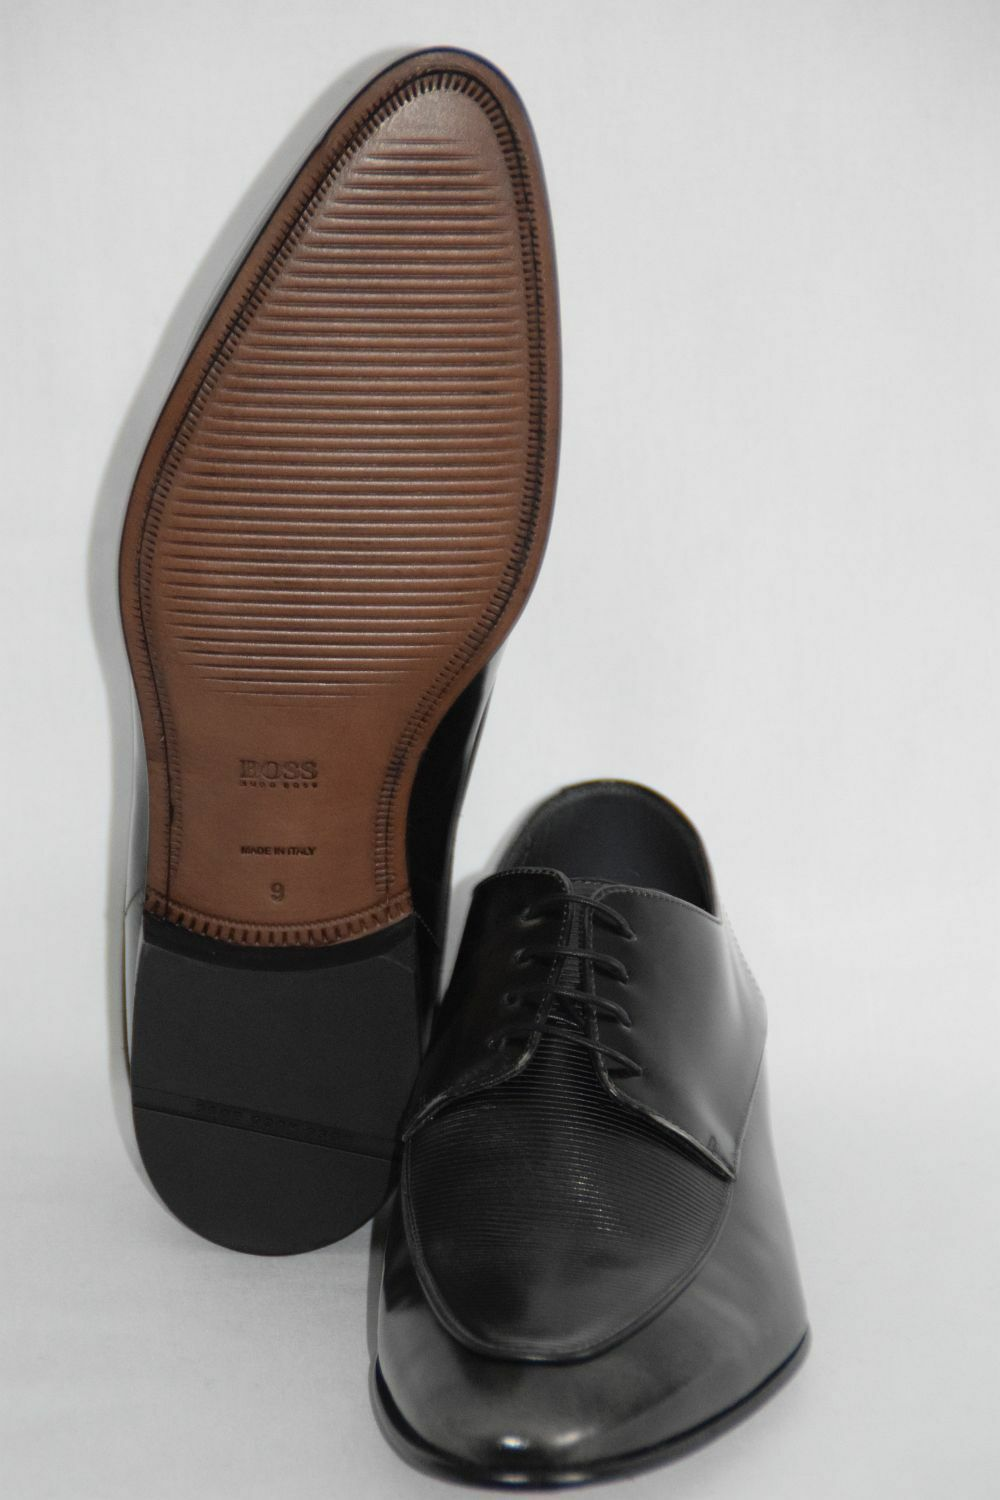 HUGO BOSS BUSINESSSCHUHE, BUSINESSSCHUHE, BUSINESSSCHUHE, Gr. 43 / UK 9,   , Made in , Dark Grau a6f813